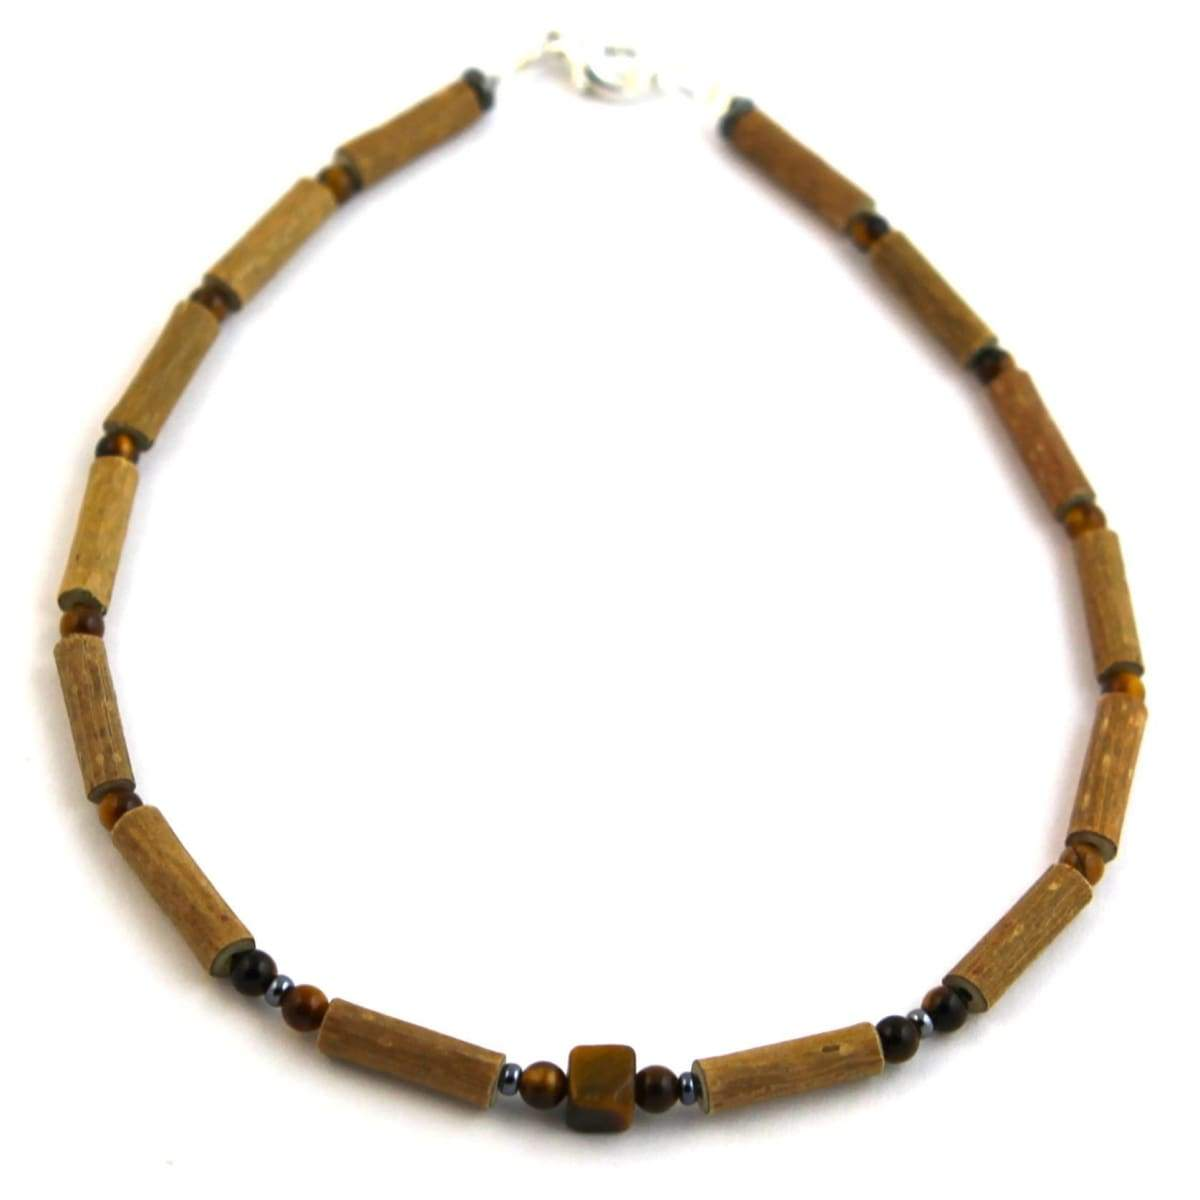 Hazel-Gemstone Tiger Eye - 11 Necklace - Lobster Claw Clasp - Hazelwood & Gemstone Jewelry